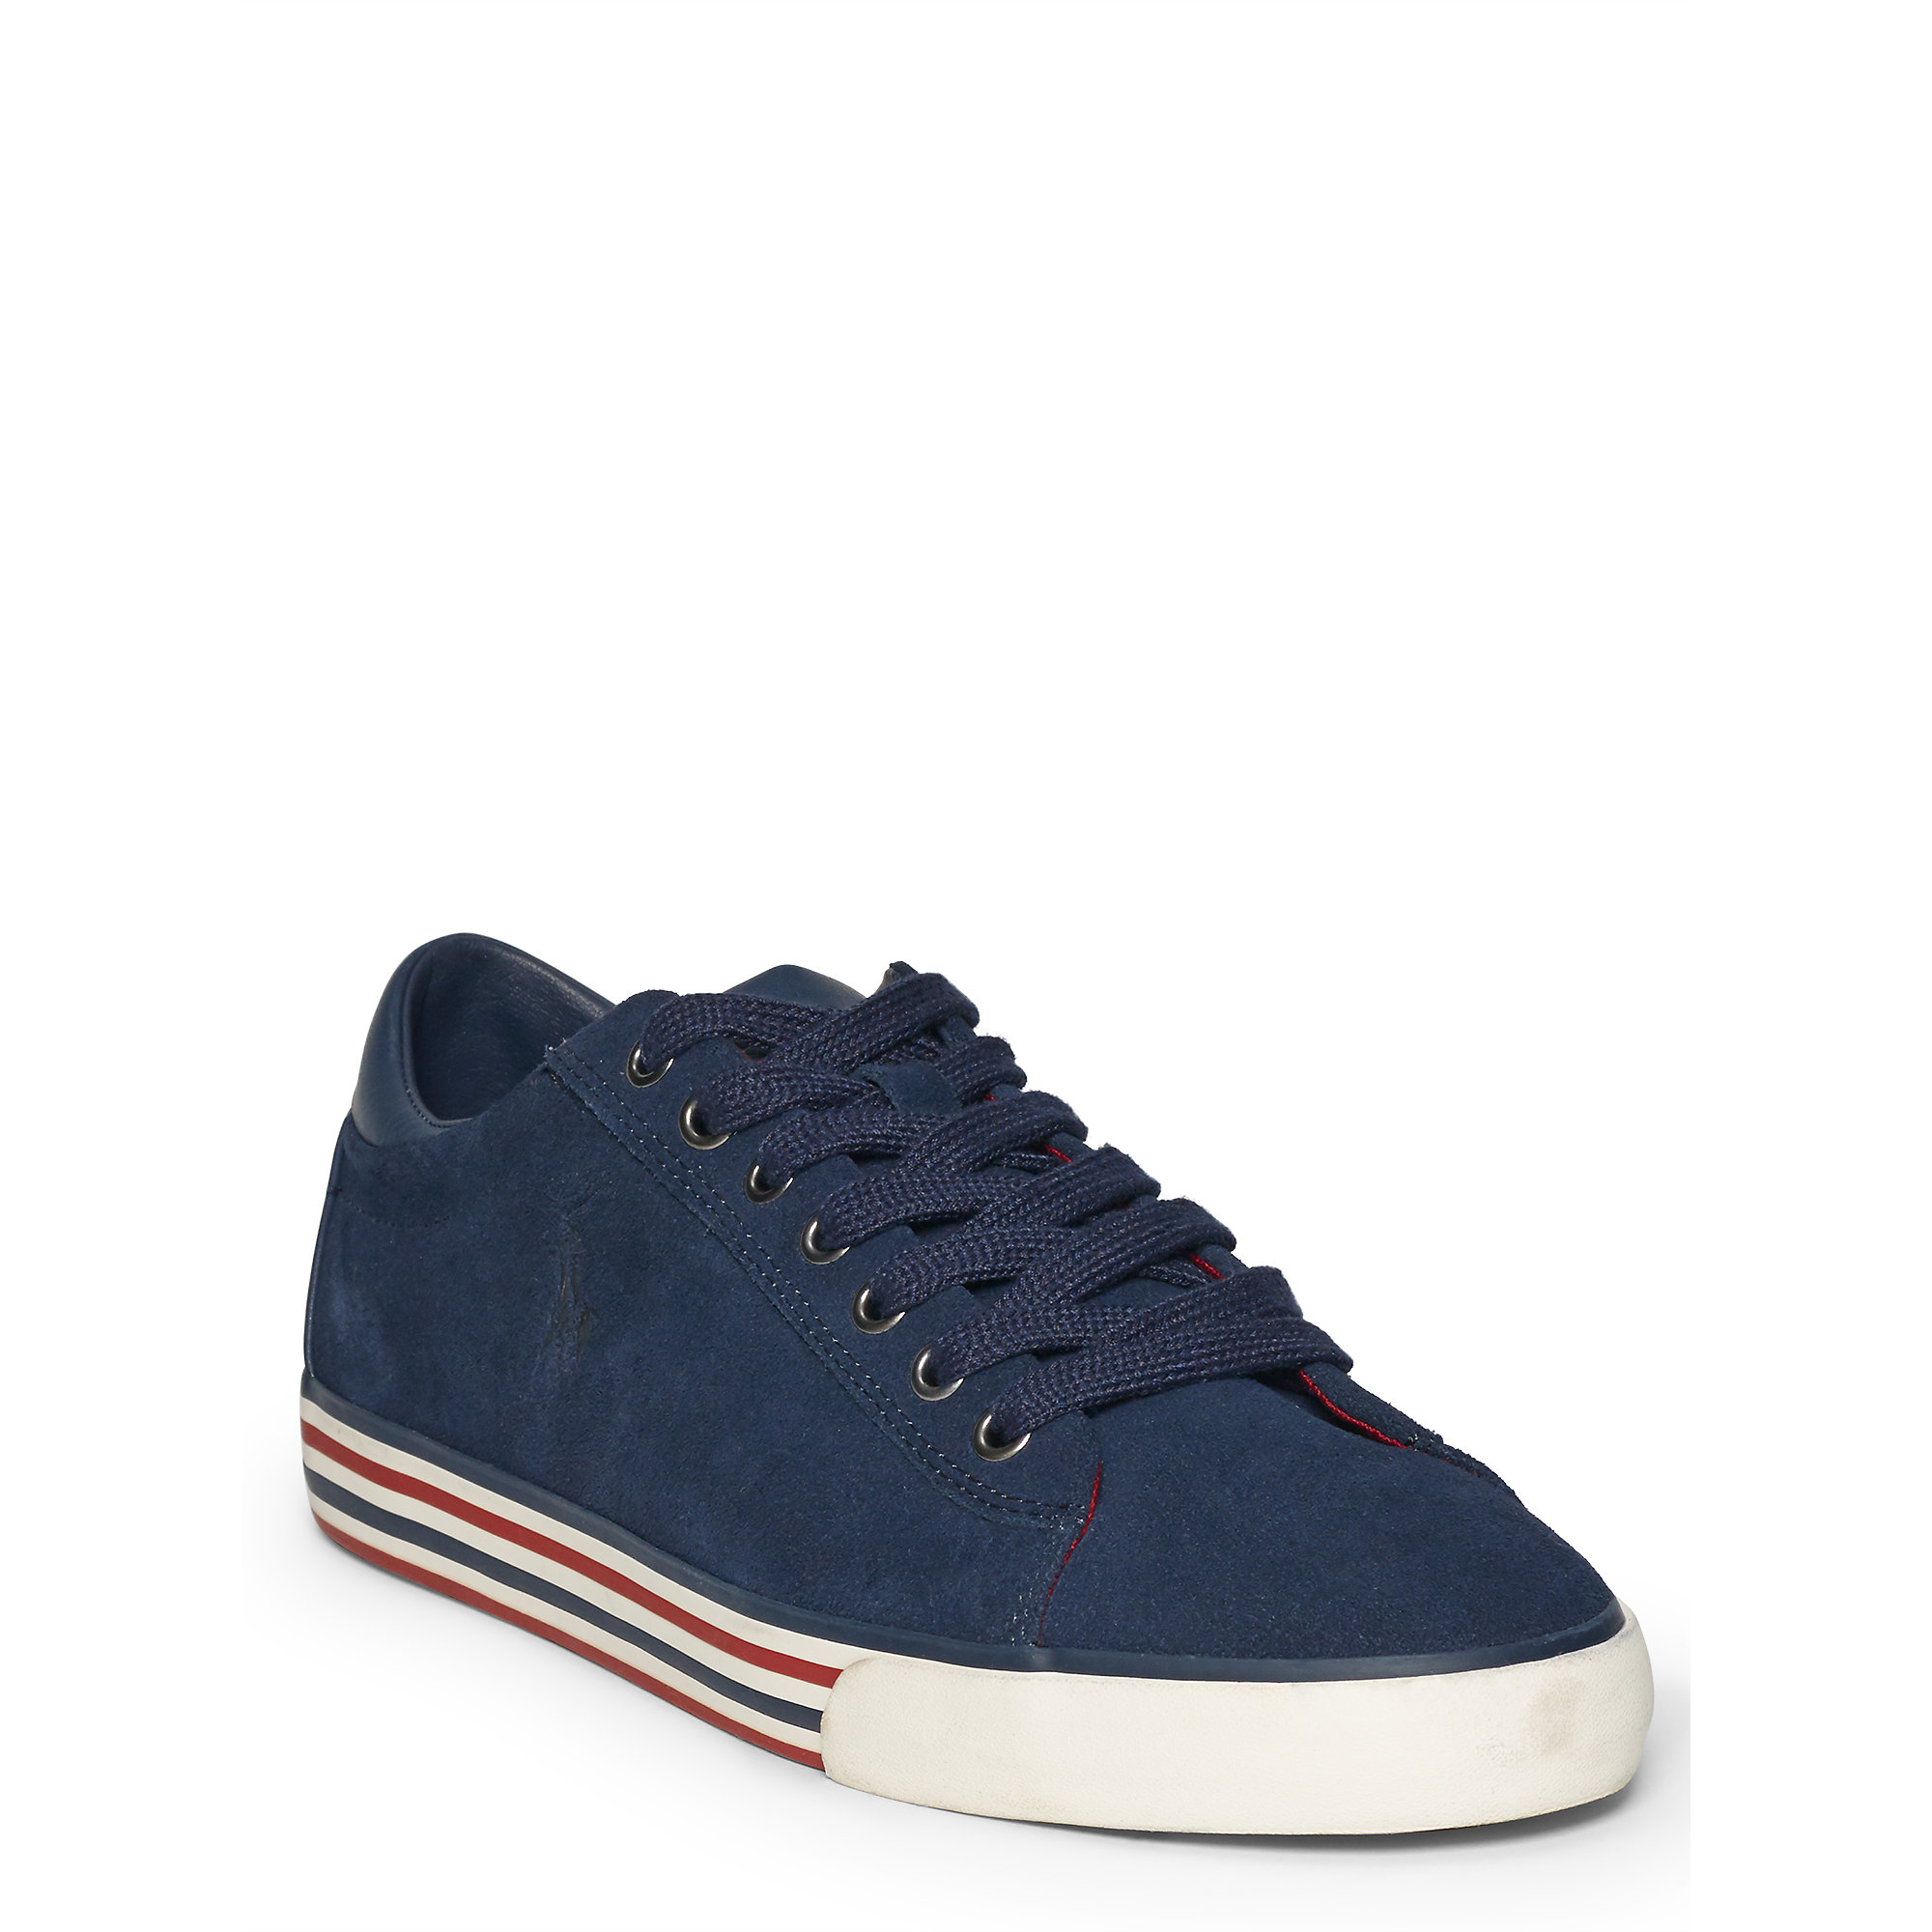 polo ralph lauren harvey suede sneaker in blue for men newport navy. Black Bedroom Furniture Sets. Home Design Ideas